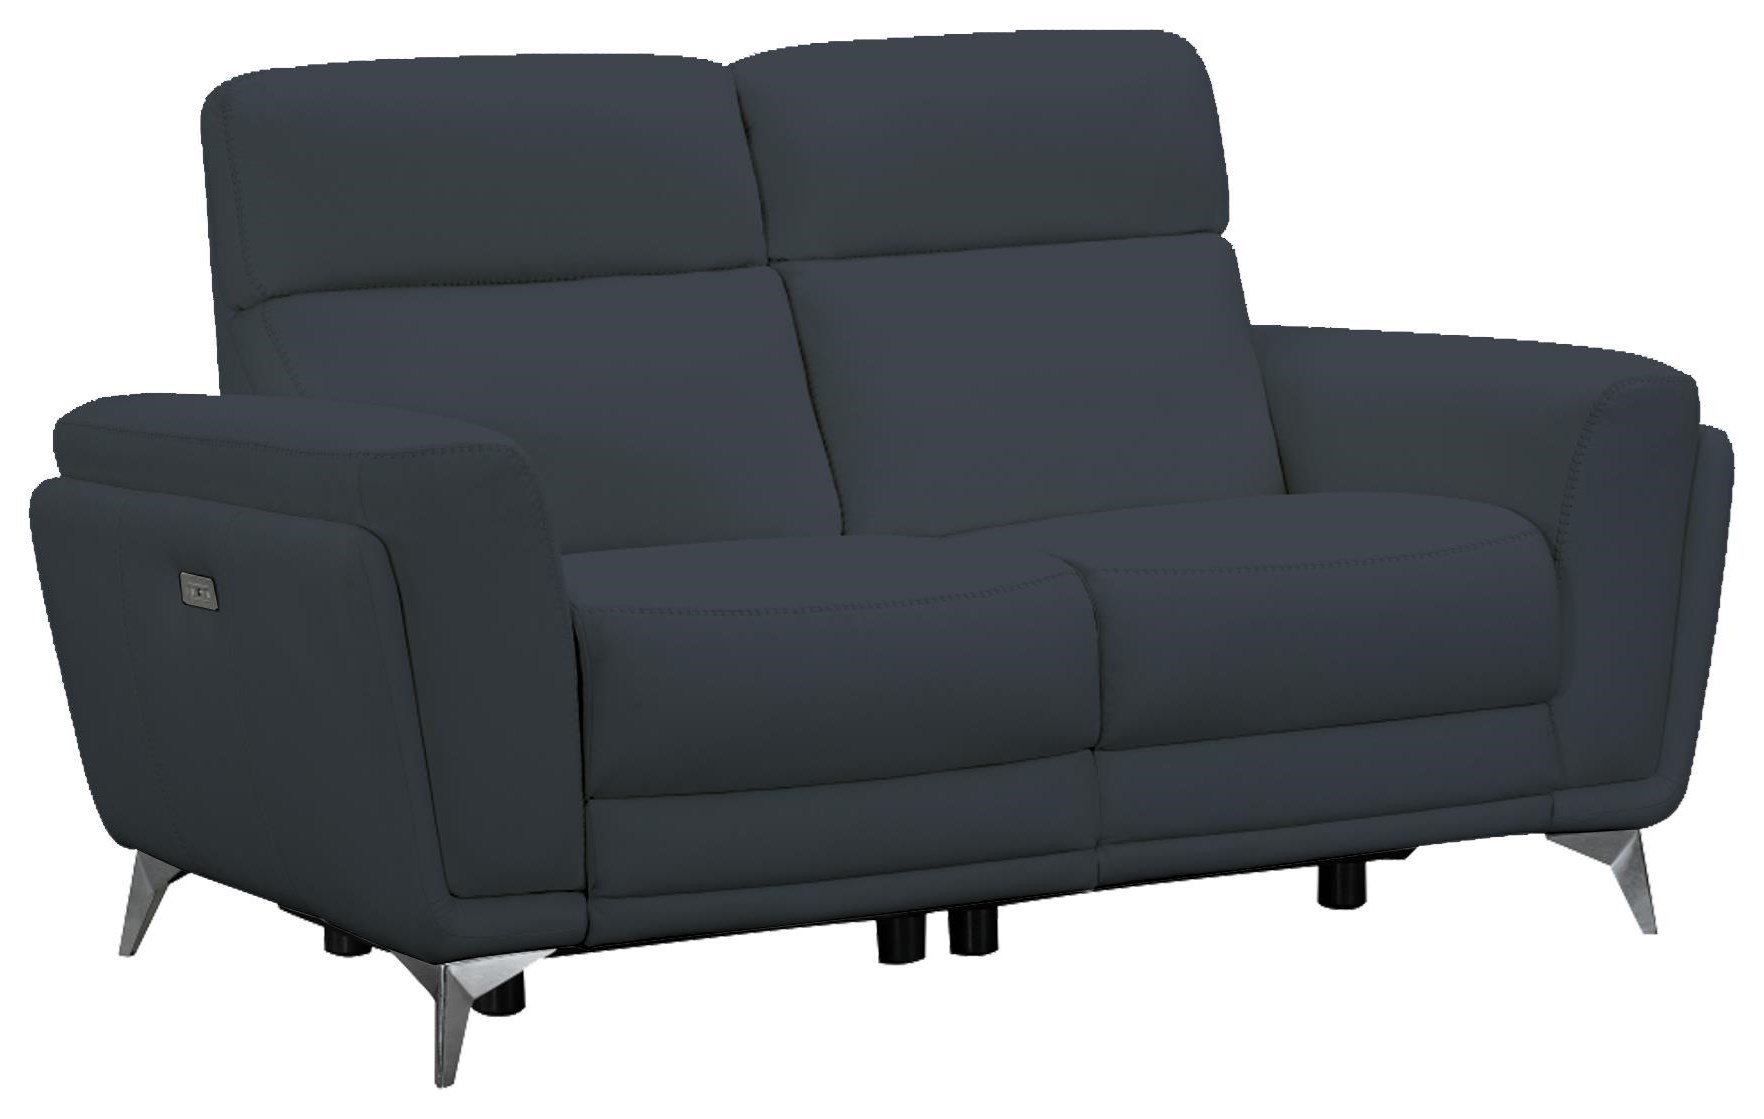 Cameron Power Reclining Loveseat by Barcalounger at Johnny Janosik